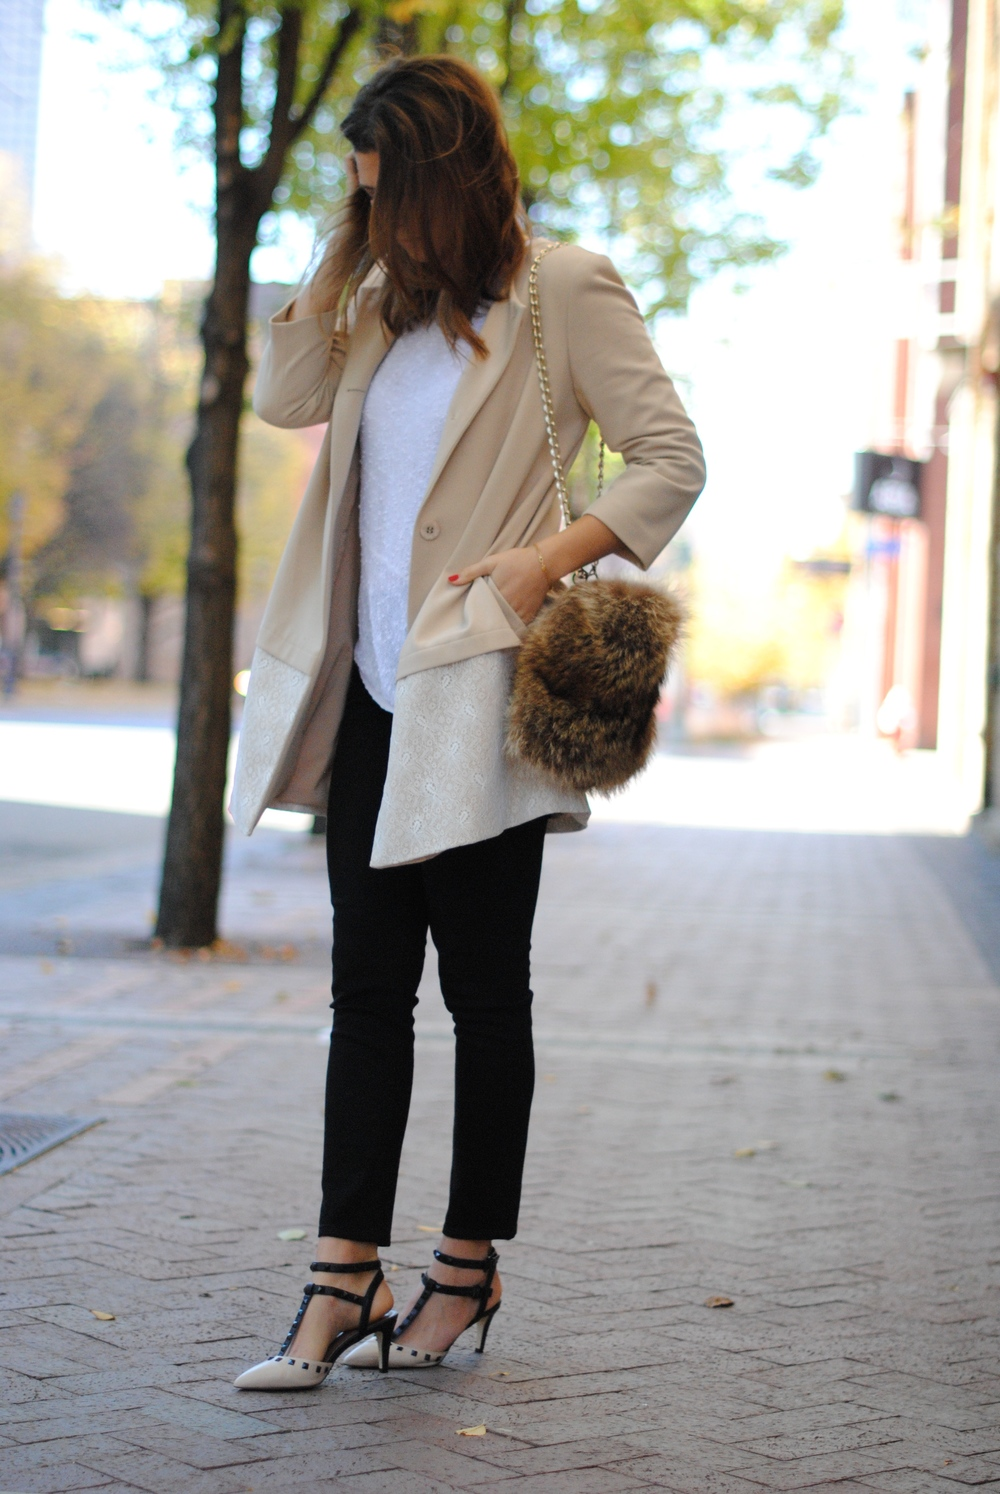 Nordstrom coat, alternative  here   Club Monaco sweater, alternative  here    J. Crew jeans    Slingbacks , Valentino's  here   Vintage fur purse  Gorjana bracelet, alternative  here